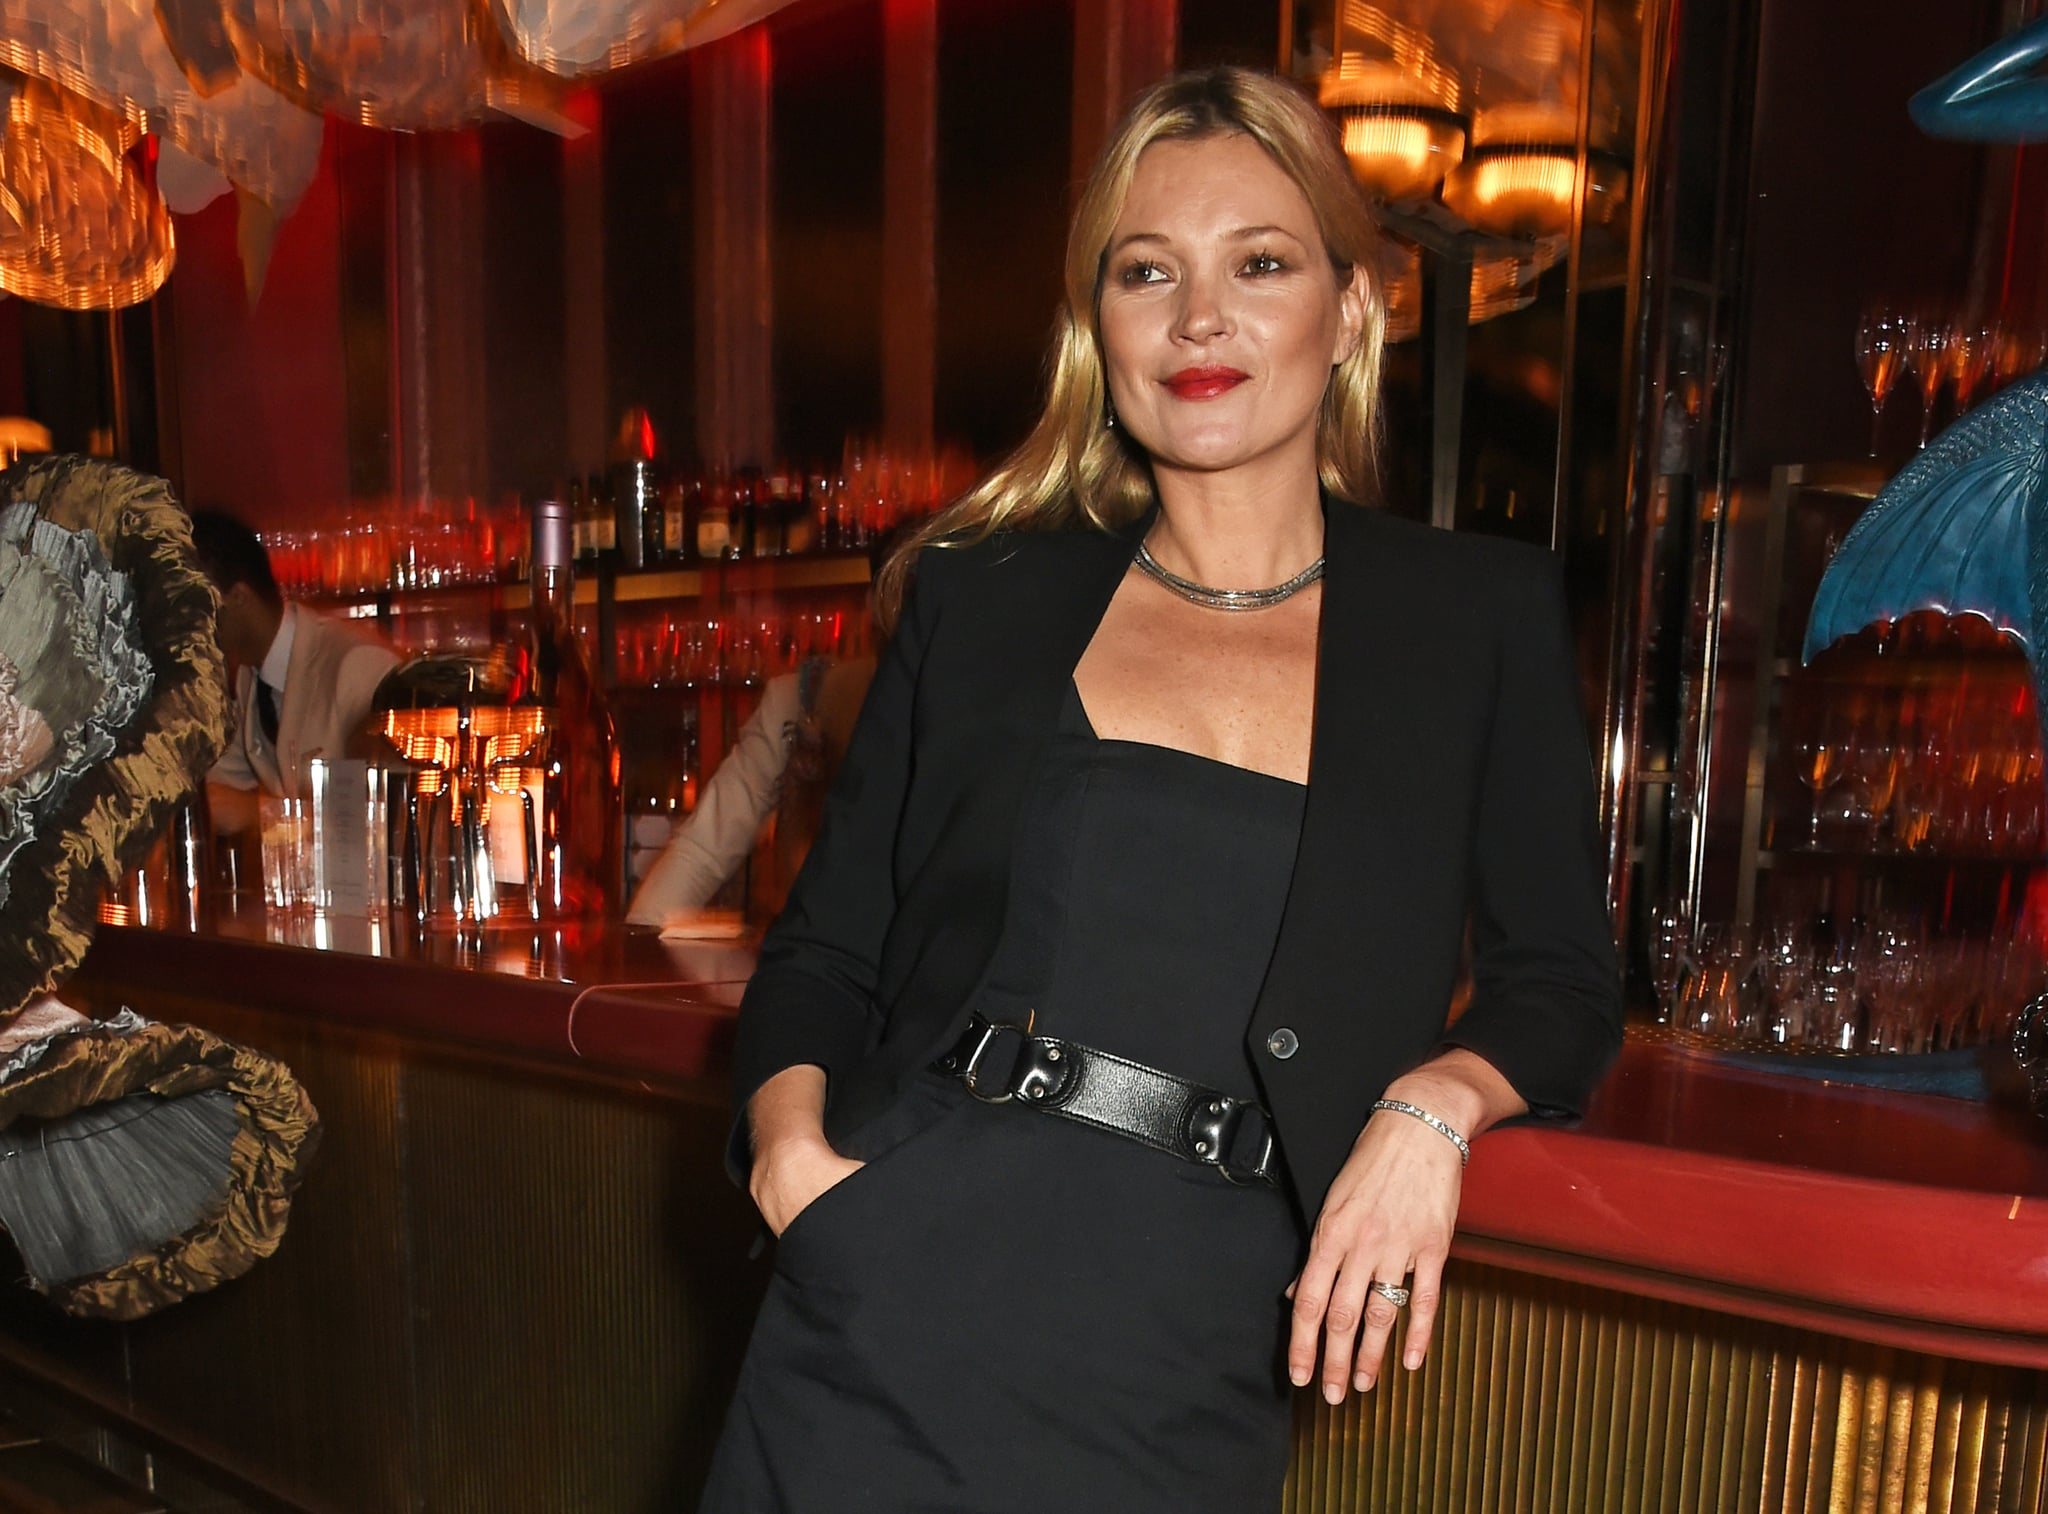 LONDON, ENGLAND - OCTOBER 08:  Kate Moss attends the launch of Sexy Fish, London in Berkeley Square on October 8, 2015 in London, England.  (Photo by David M. Benett/Dave Benett/Getty Images for Caprice Holdings Limited)